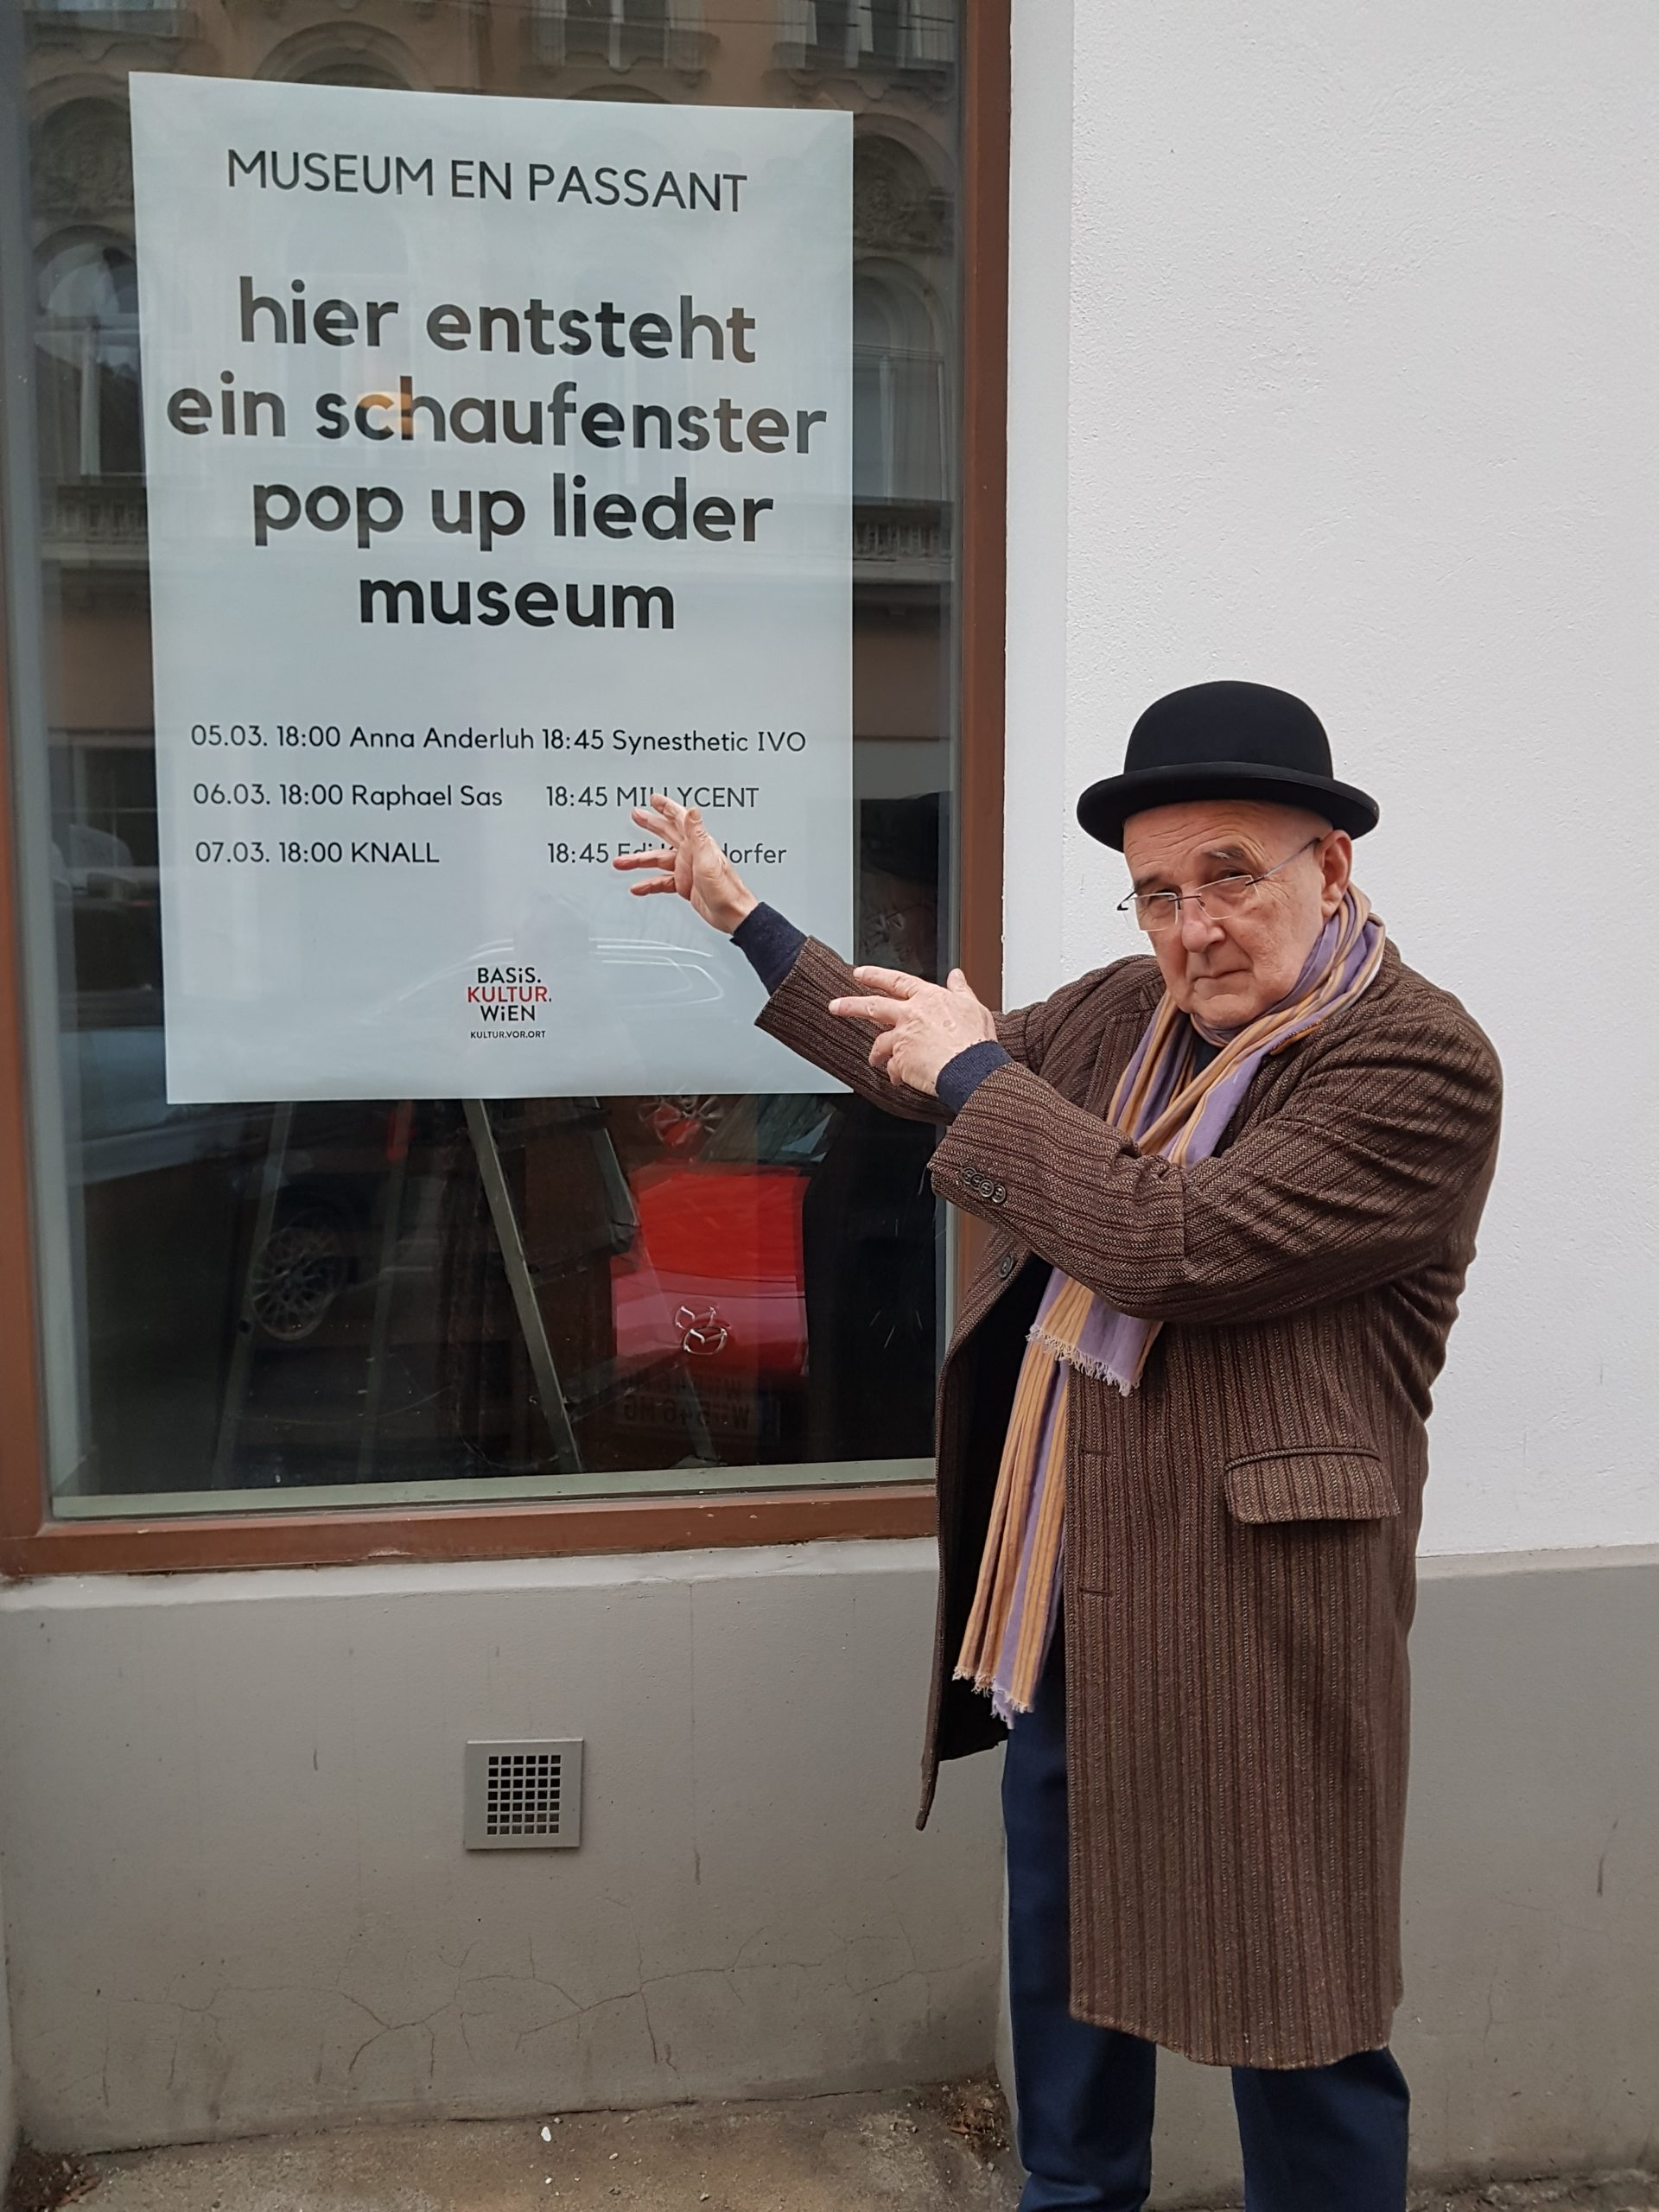 MUSEUM EN PASSANT - POP-UP LIEDER-MUSEUM IN WIEDEN!